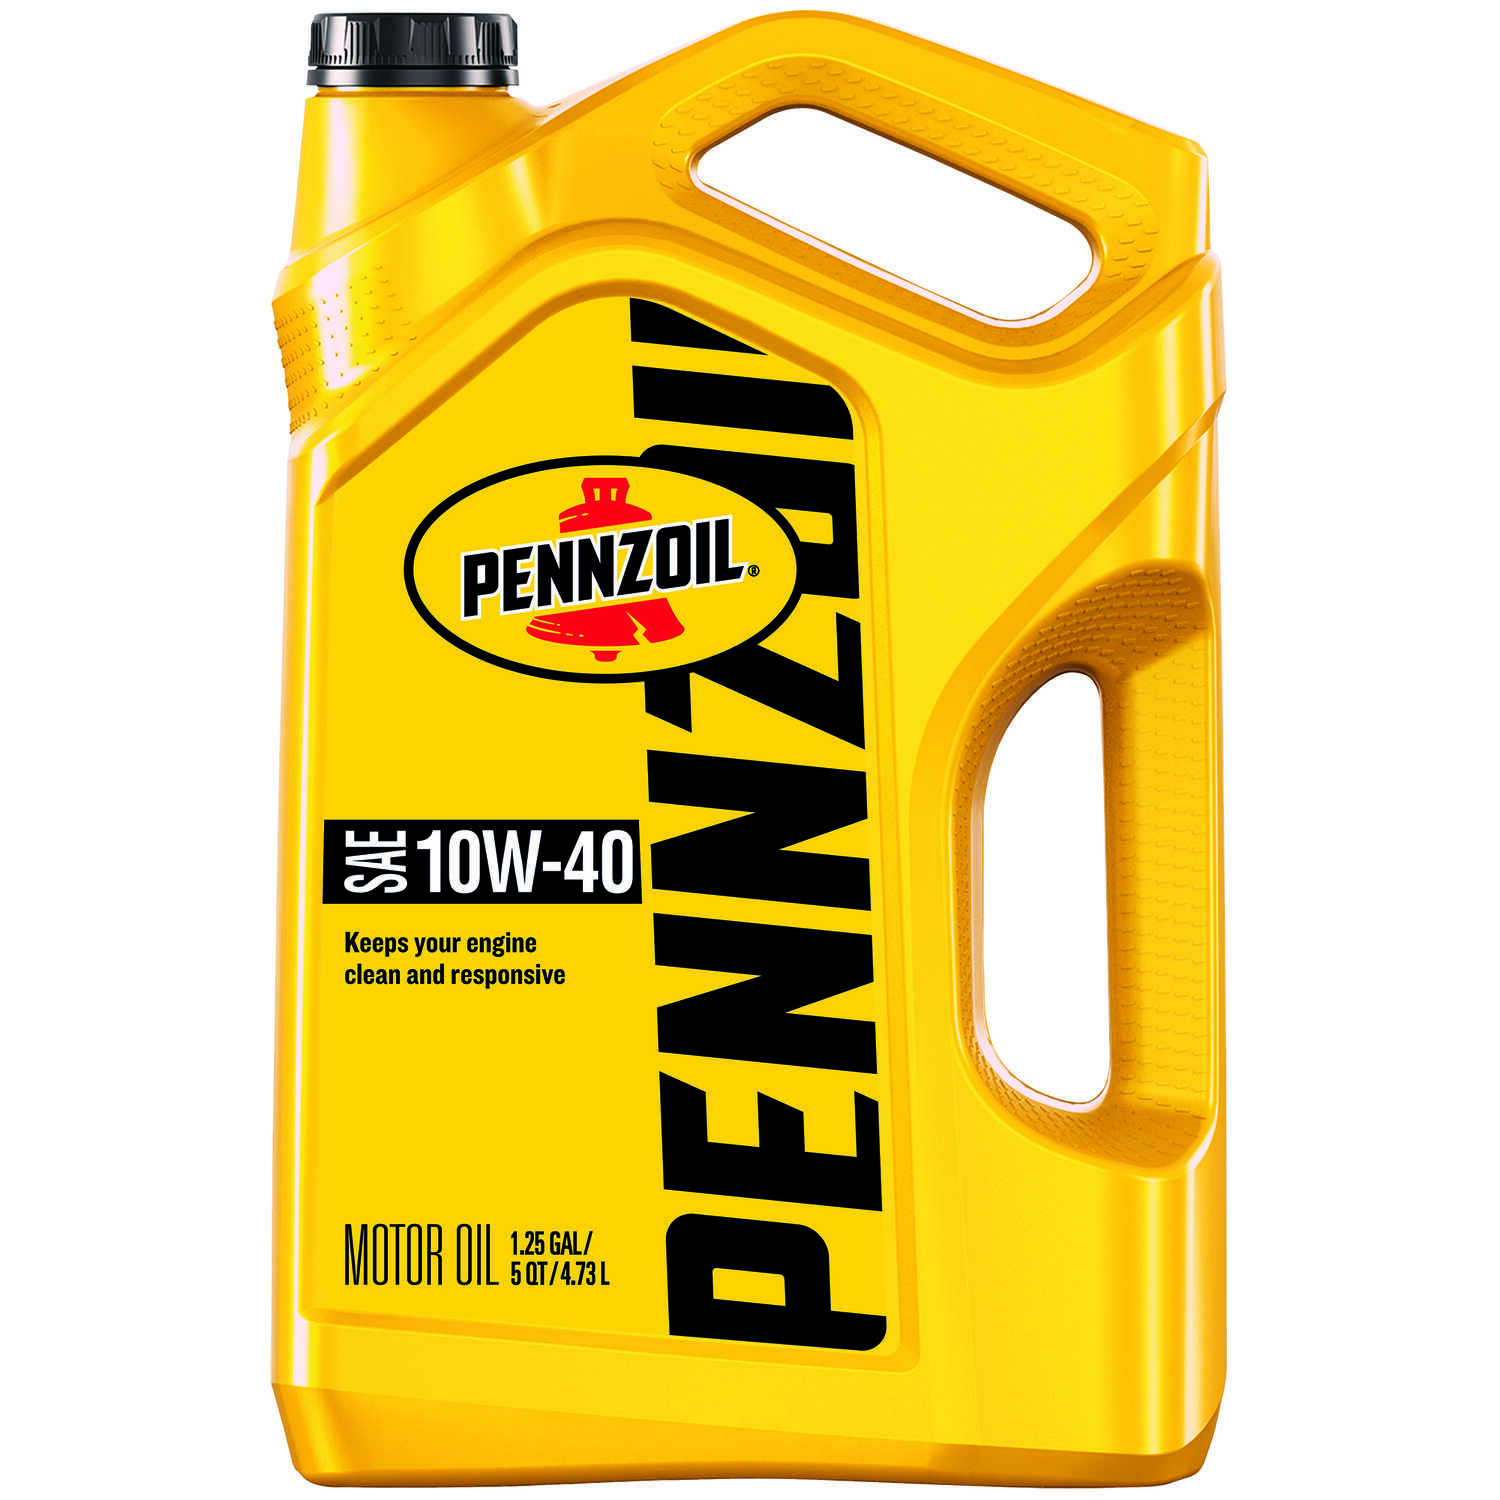 PENNZOIL  10W-40  4 Cycle Engine  Motor Oil  5.1 gal.